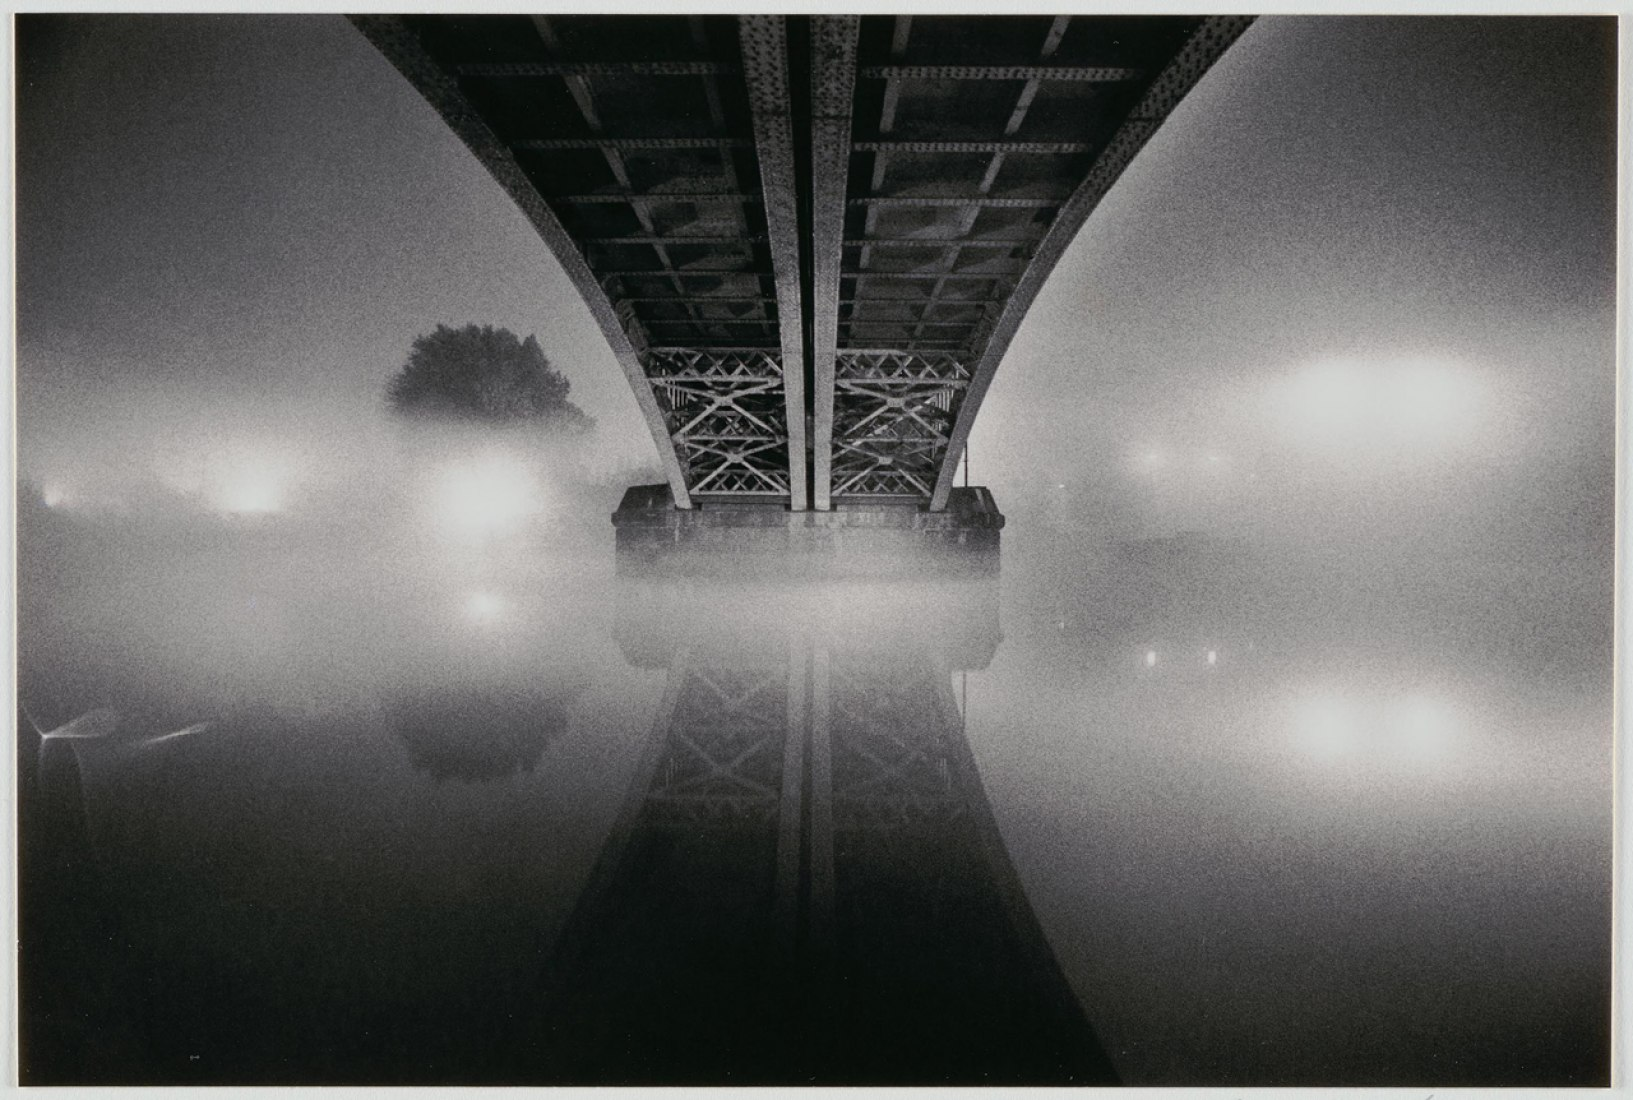 Michael Kenna; Homage to Brassai, London, England; negative 1983/print 1984; Toned gelatin silver print; Gift of the George H. Ebbs Family, 2007.51.52.